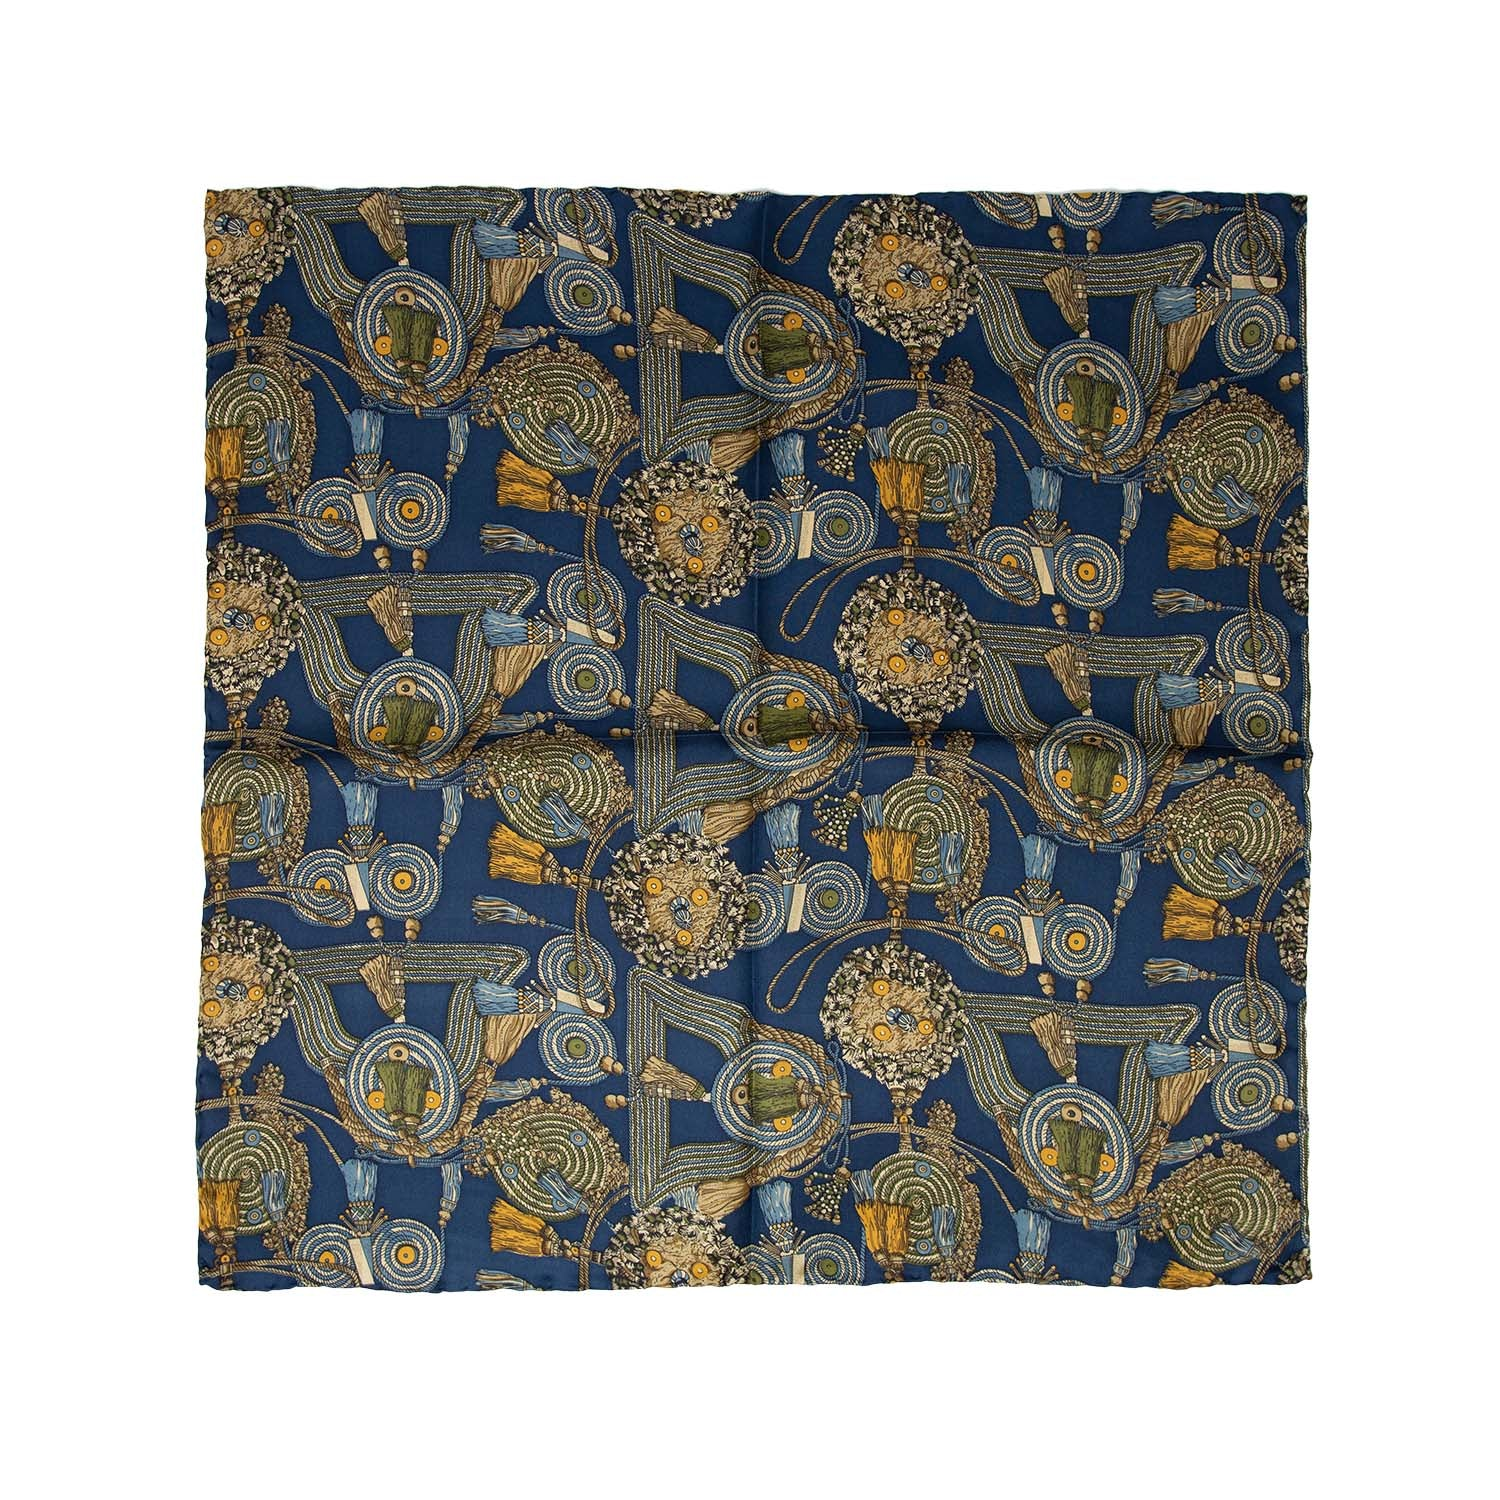 Navy Blue with Ropes Vintage Pattern Pocket Square